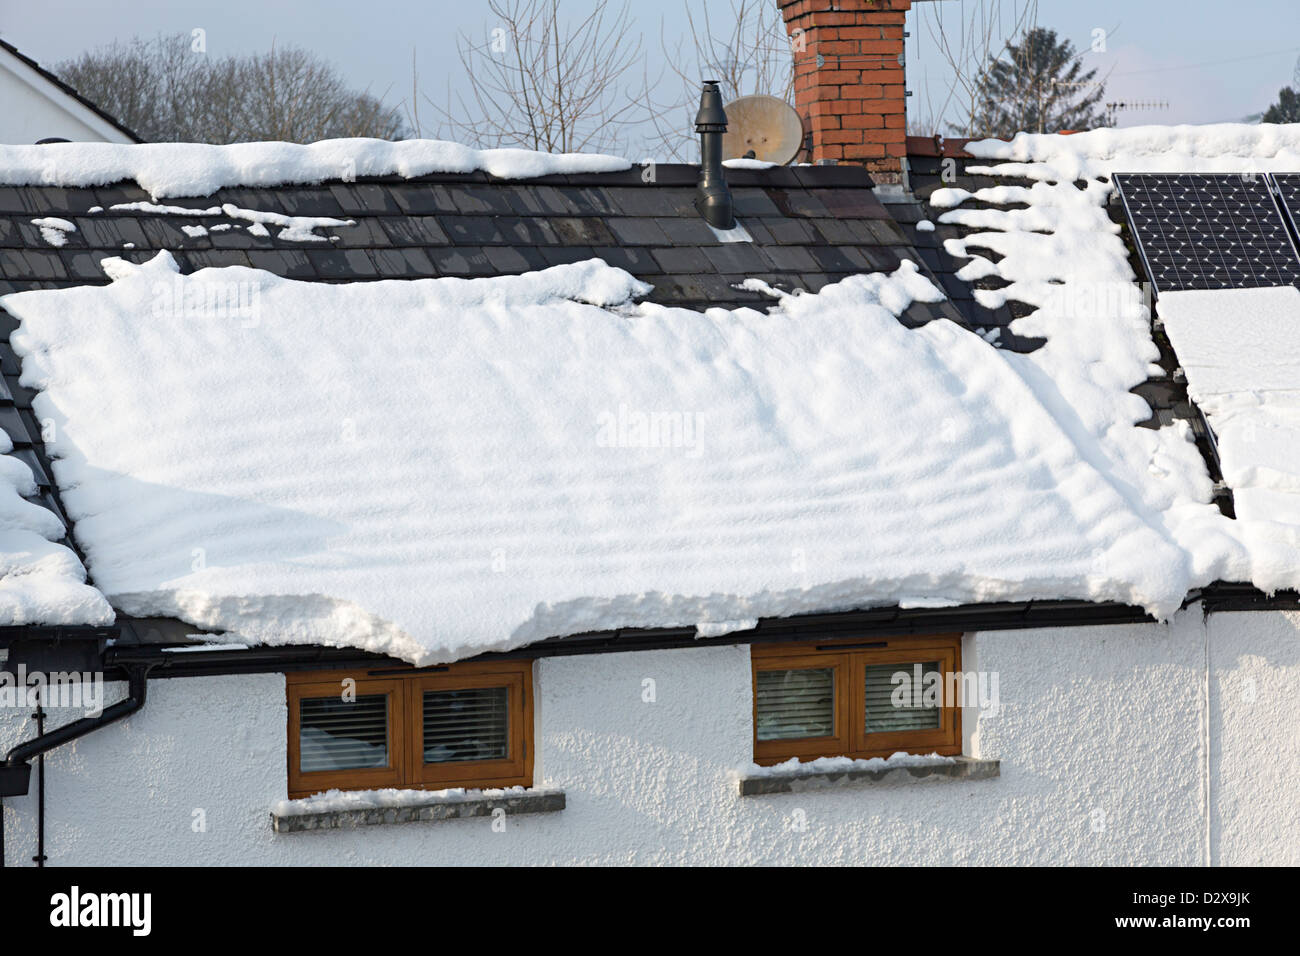 Snow sliding off tiled roof and putting weight onto gutters of house, Llanfoist, Wales, UK - Stock Image